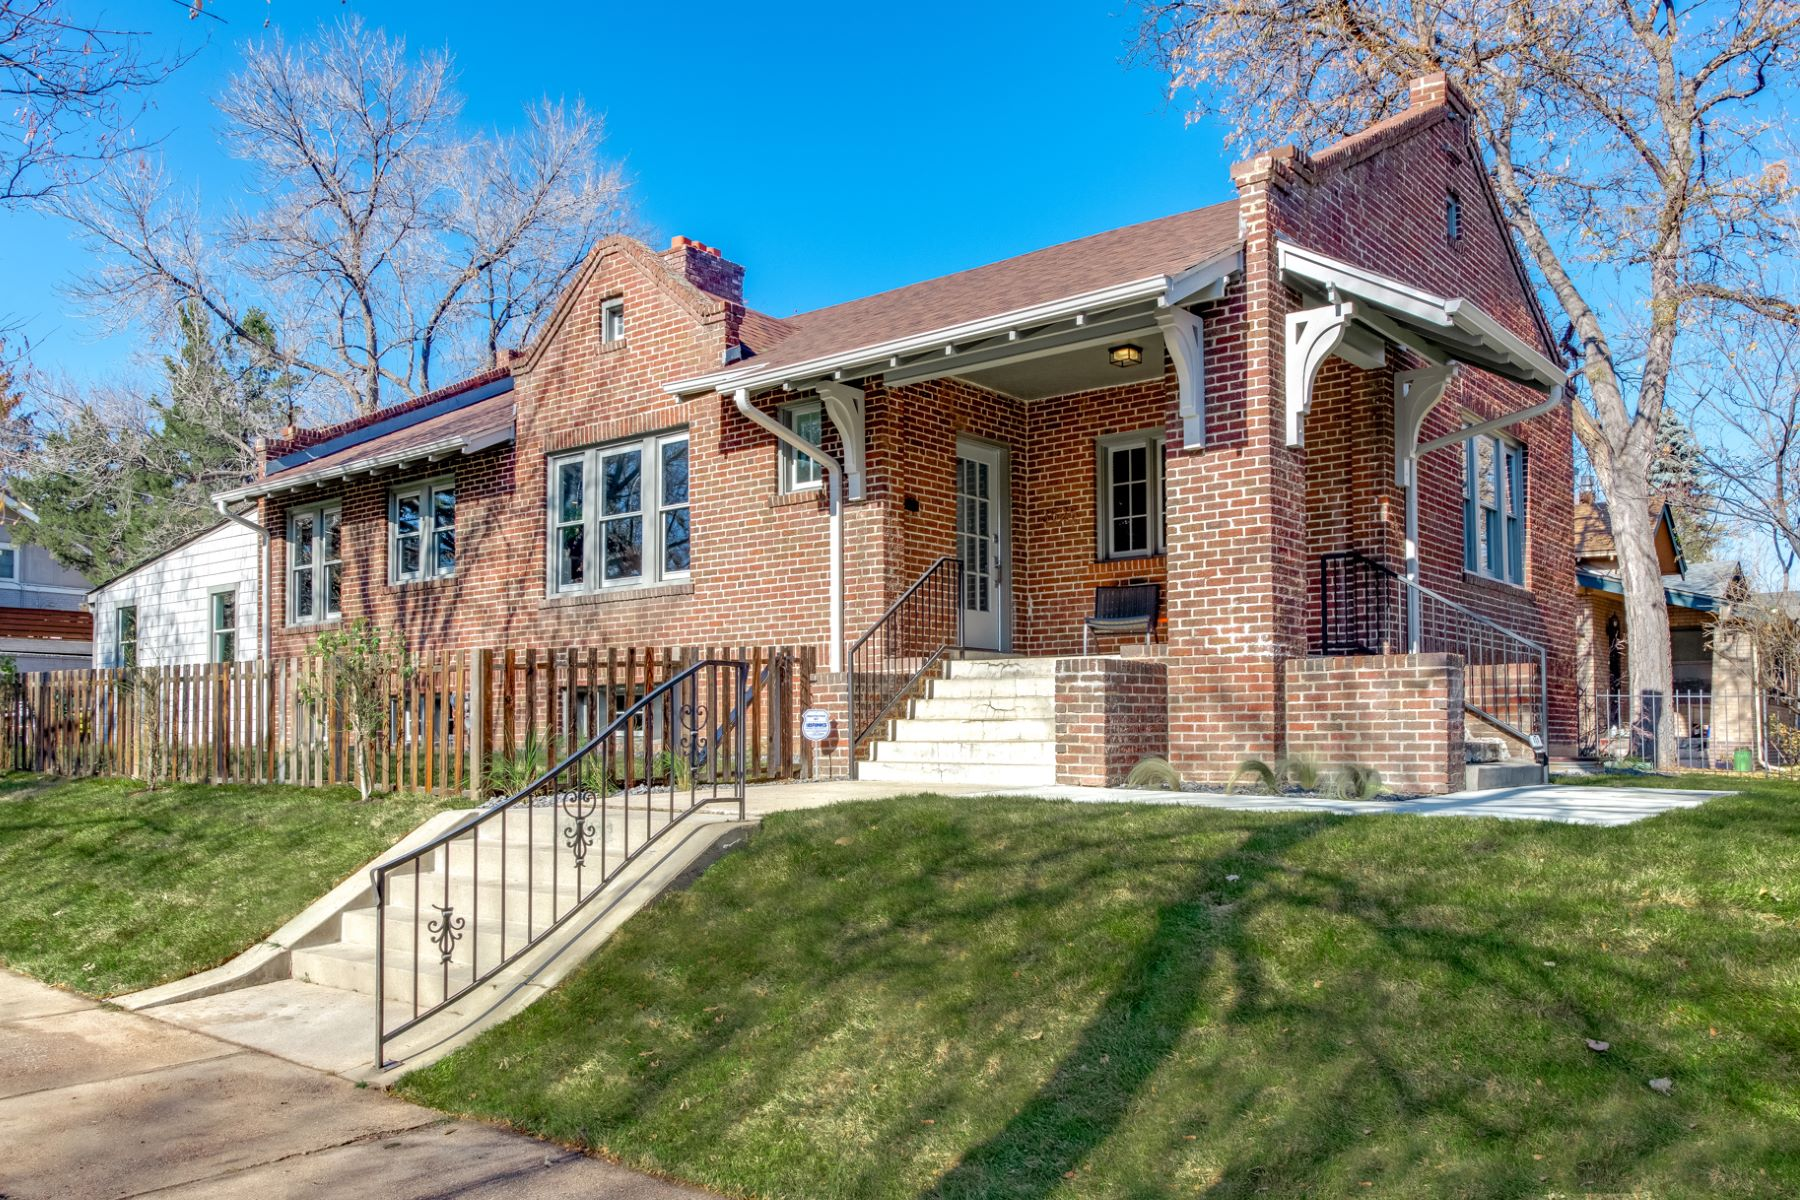 Single Family Home for Active at 3525 East 7th Avenue Parkway 3525 East 7th Avenue Parkway Denver, Colorado 80206 United States